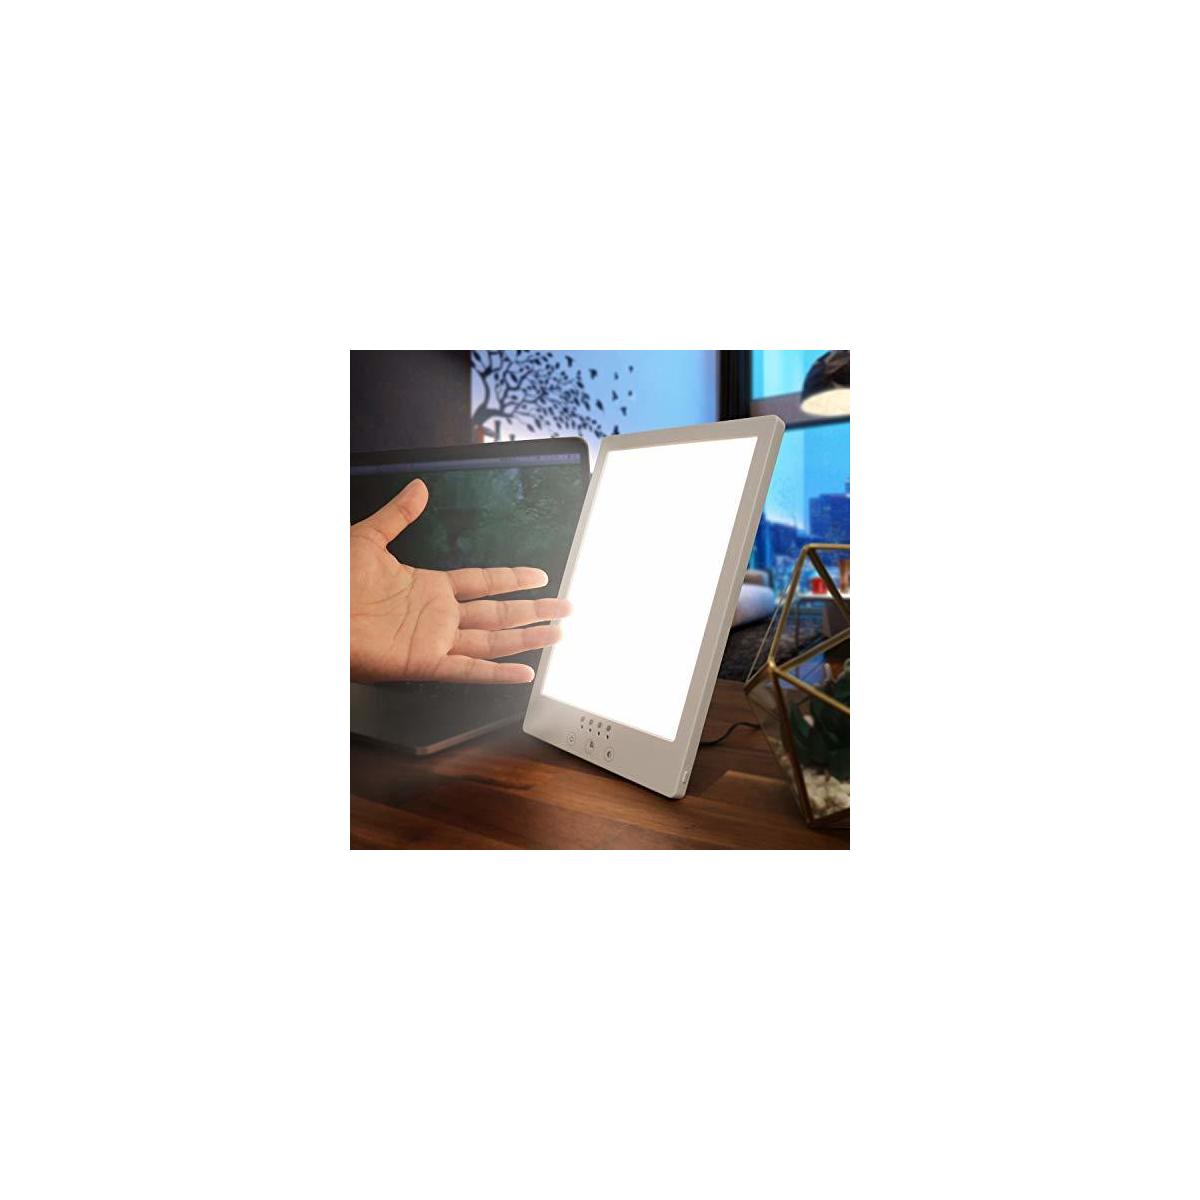 Mood Restore - 12,000 LUX Light Therapy Lamp - Happy Sun Light w/Timer, Simulates & Imitates Natural Sunlight UV-Free w/ 6ft Power Cord UL Listed